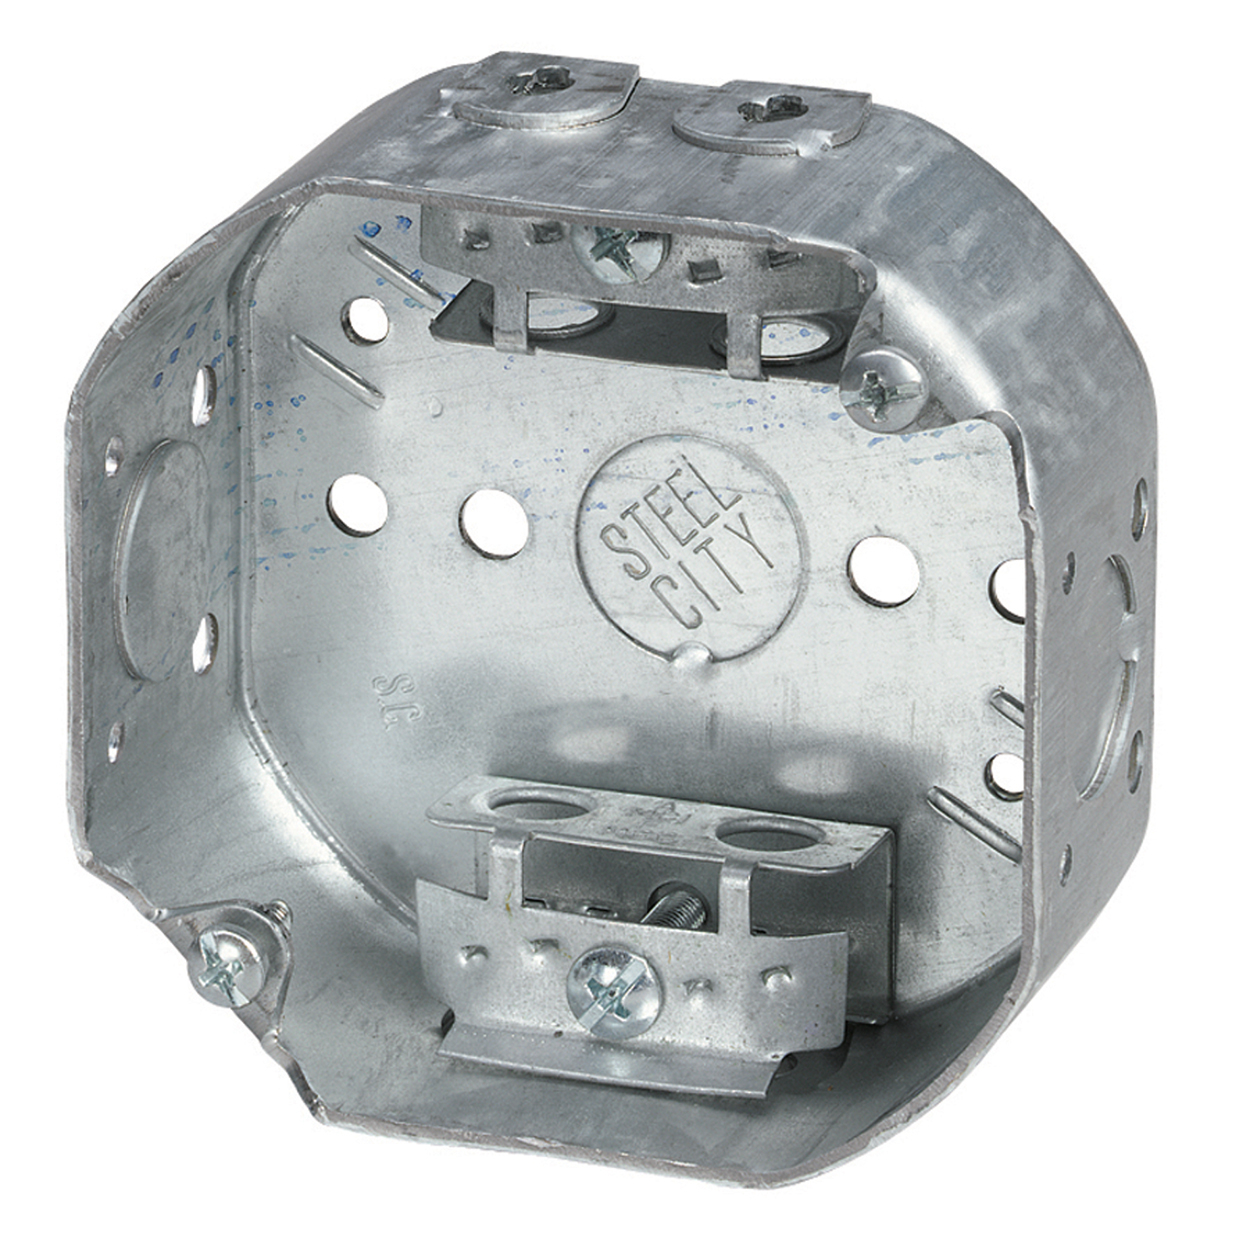 Steel City® 54151-A Drawn Style Octagon Ceiling Box, Steel, 15.8 cu-in Capacity, 1 Outlets, 2 Knockouts, 1-1/2 in D